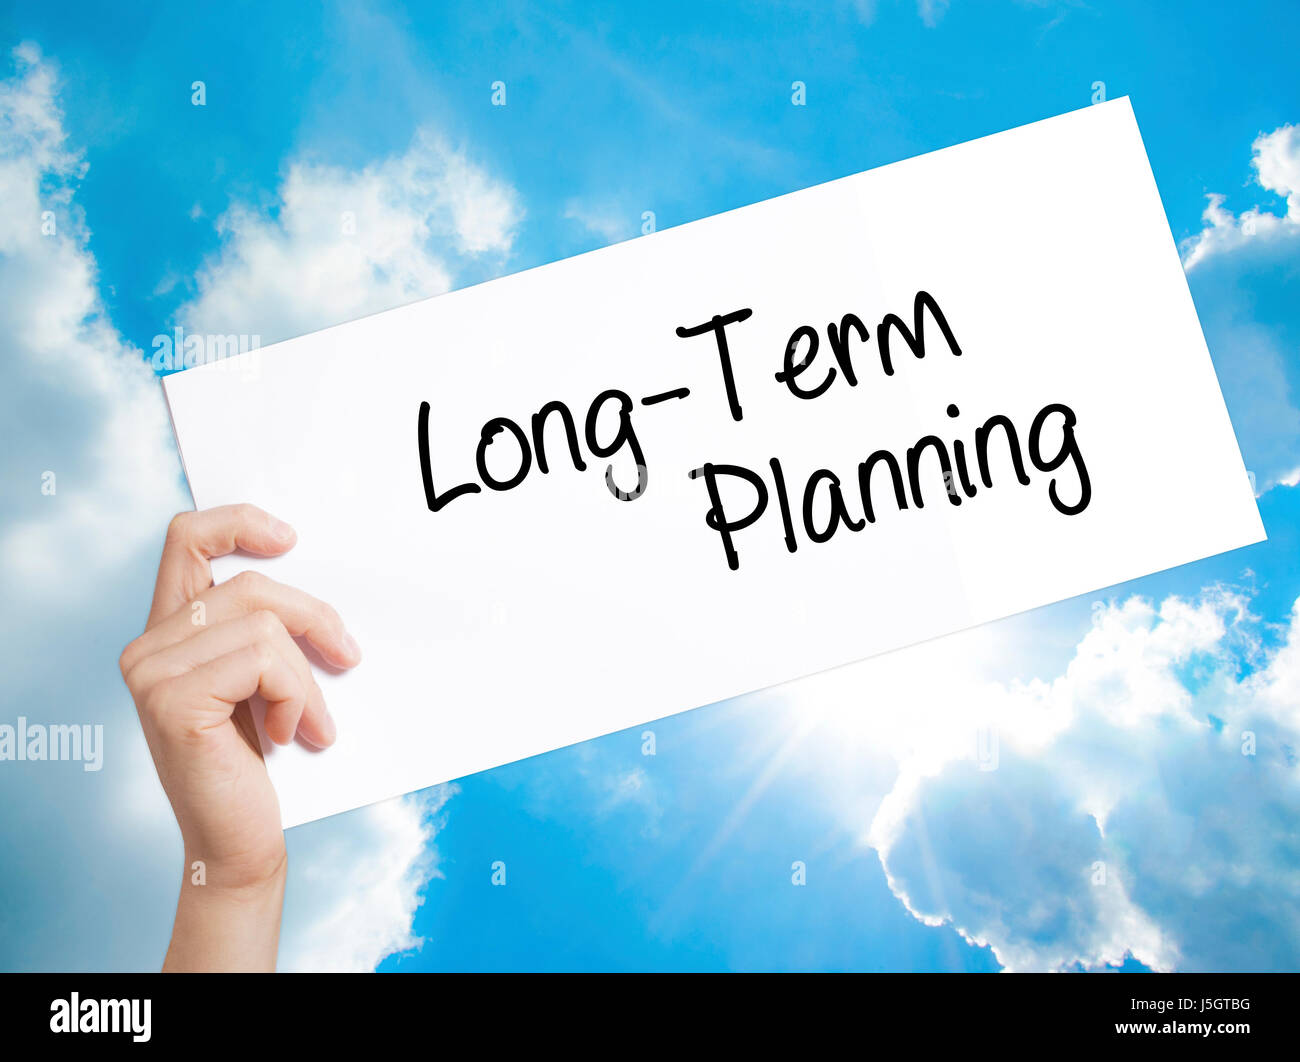 Long-Term Planning Sign on white paper. Man Hand Holding Paper with text. Isolated on sky background.  Business - Stock Image